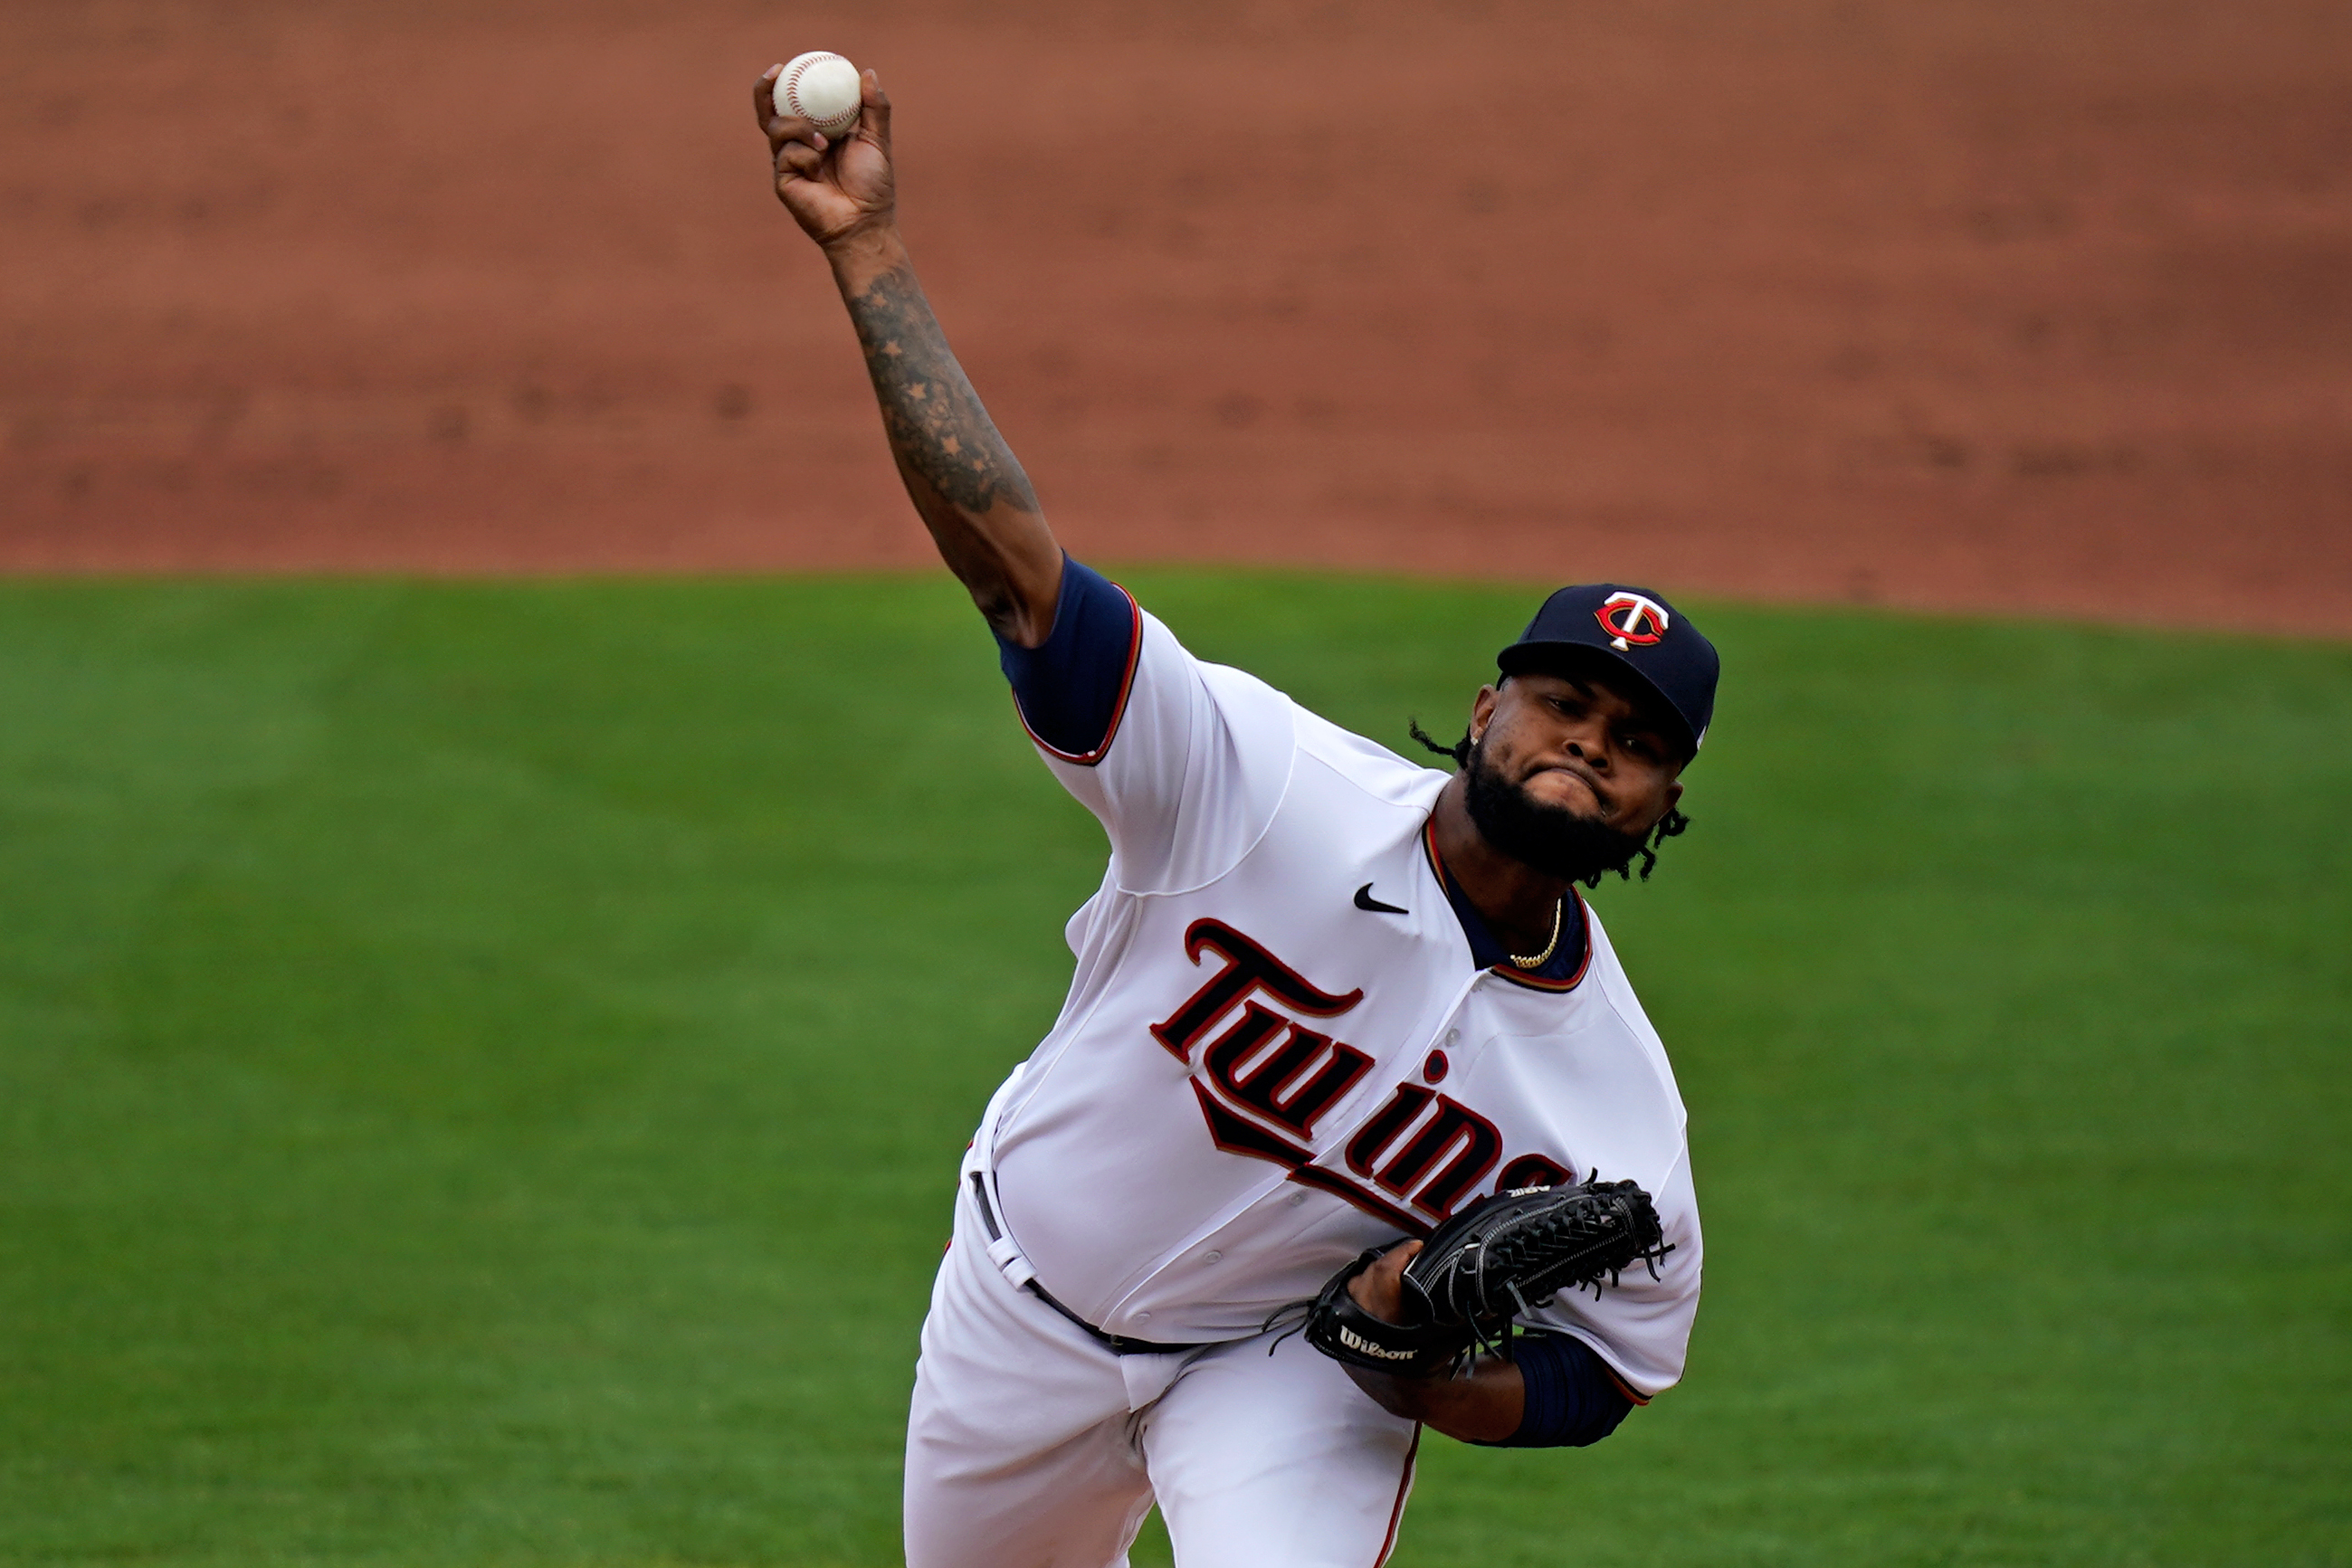 Minnesota Twins relief pitcher Alex Colome (48) delivers a pitch in the 3rd inning of the spring training game against the Boston Red Sox at CenturyLink Sports Complex.